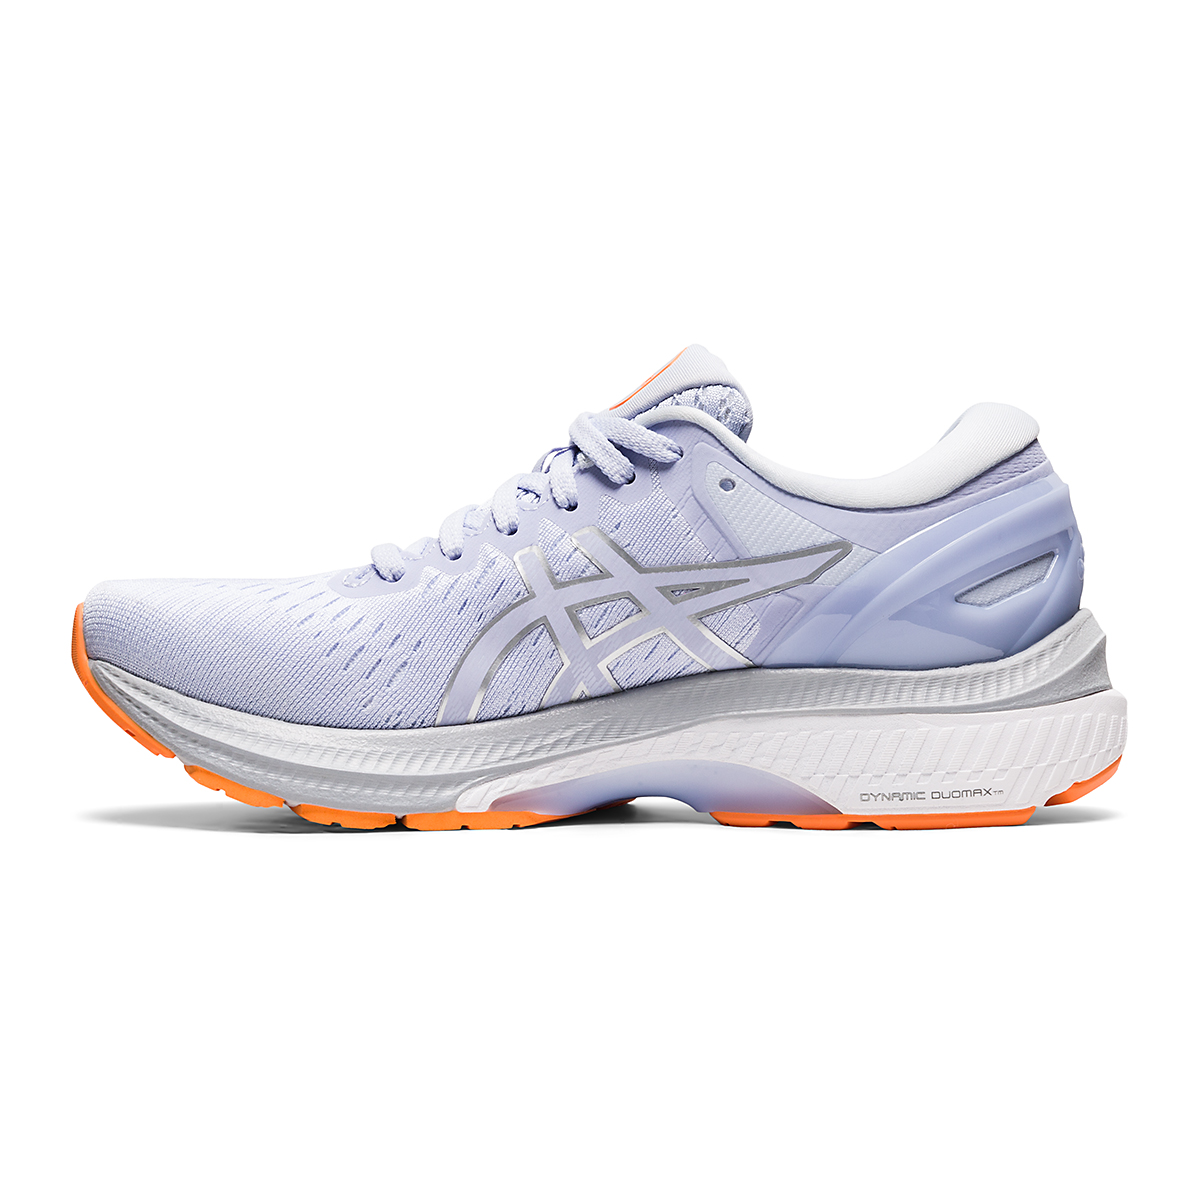 Women's Asics GEL-Kayano 27 Running Shoe - Color: Lilac Opal/Pure Silver - Size: 6 - Width: Regular, Lilac Opal/Pure Silver, large, image 2